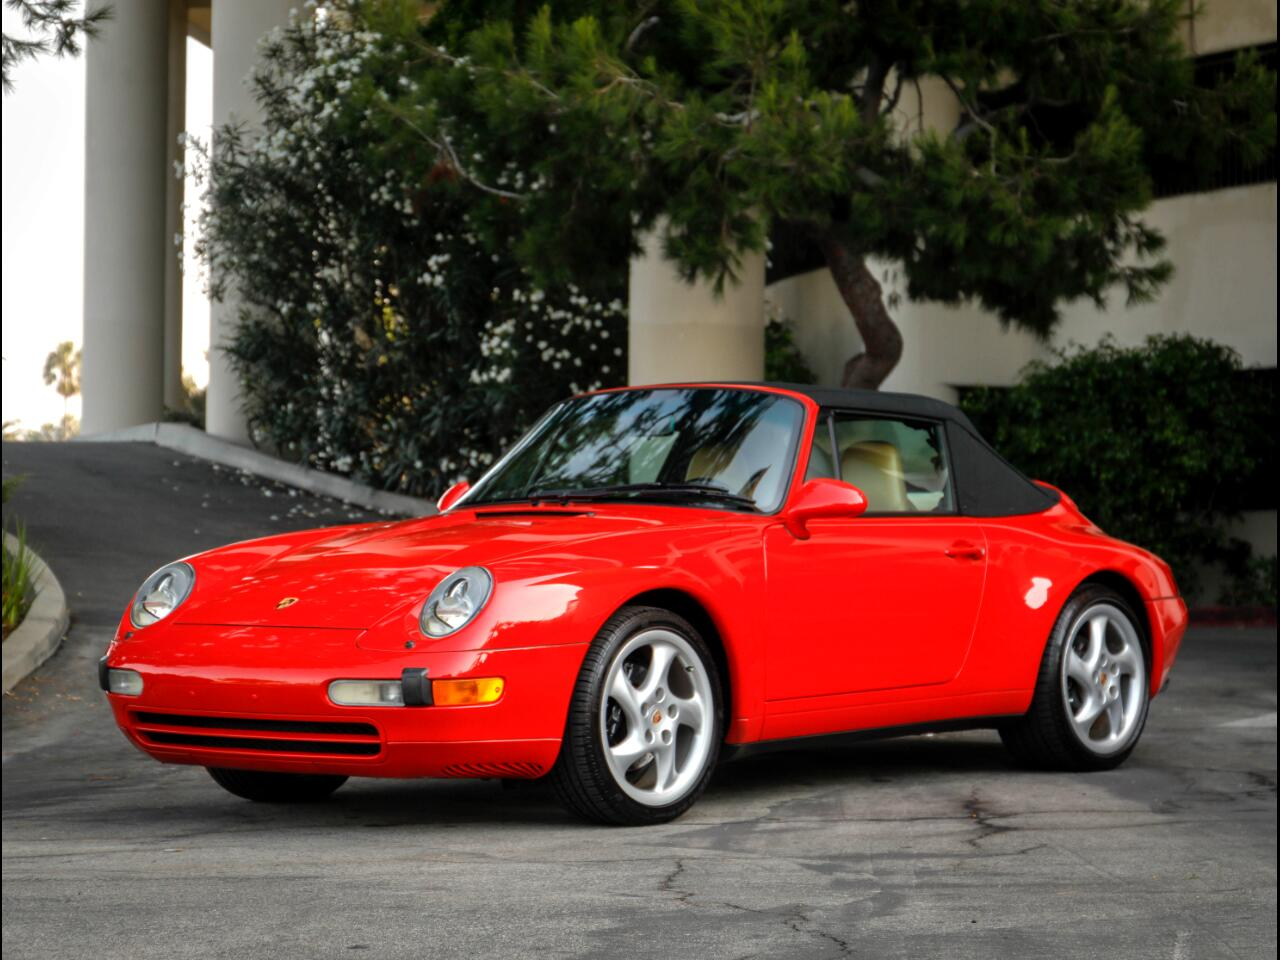 1997 Porsche 911 Carrera 2dr Carrera Cabriolet 6-Spd Manual